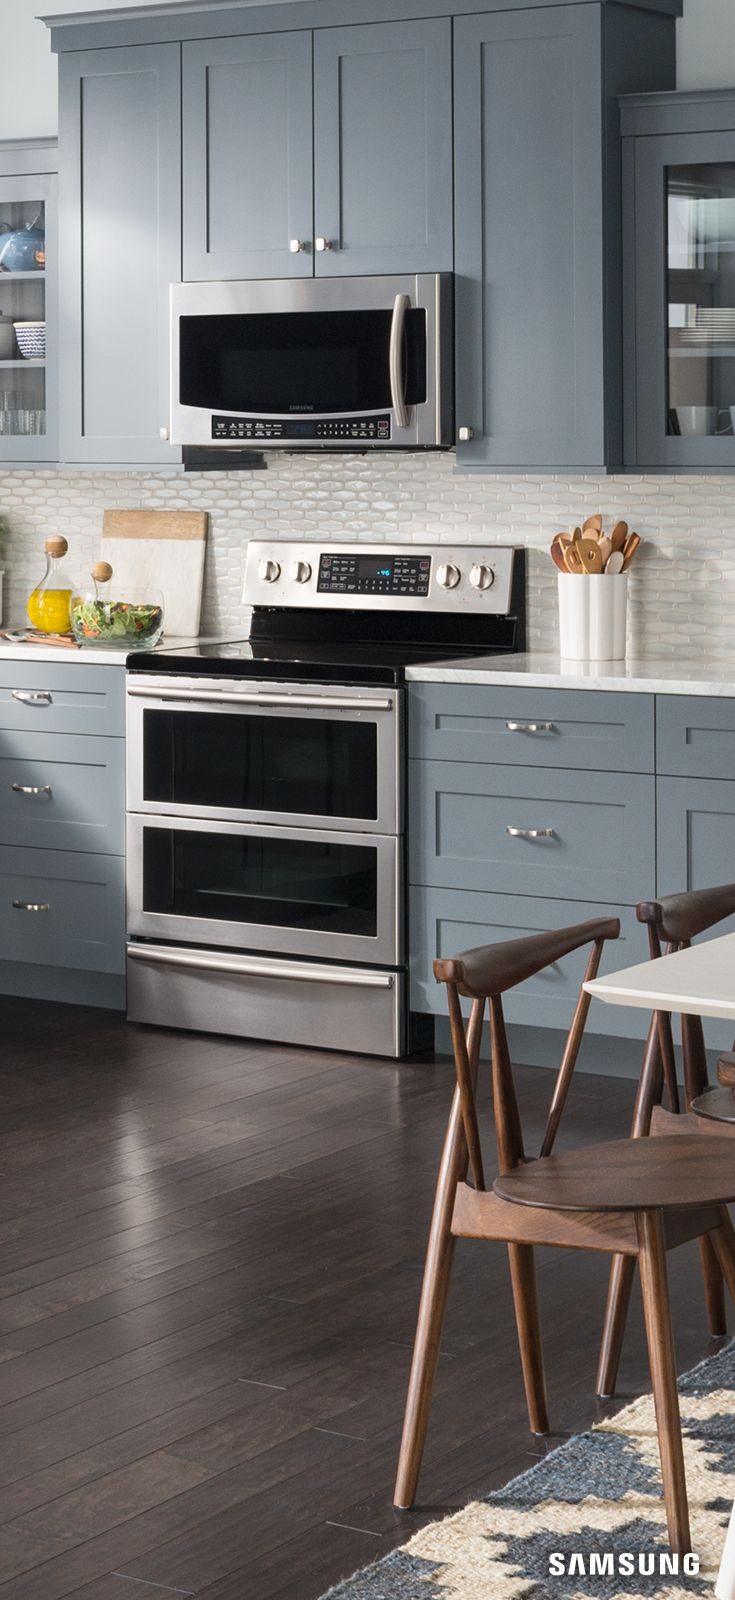 In need of kitchen inspiration? The Samsung electric two door range is the perfect fit for your modern cottage. Its stainless steel pairs seamlessly with hardwood floors, statement cabinetry, and marble countertops while adding warmth to your kitchen. Its sleek, clean, design is also functional and makes cooking two dishes simultaneously a cinch.